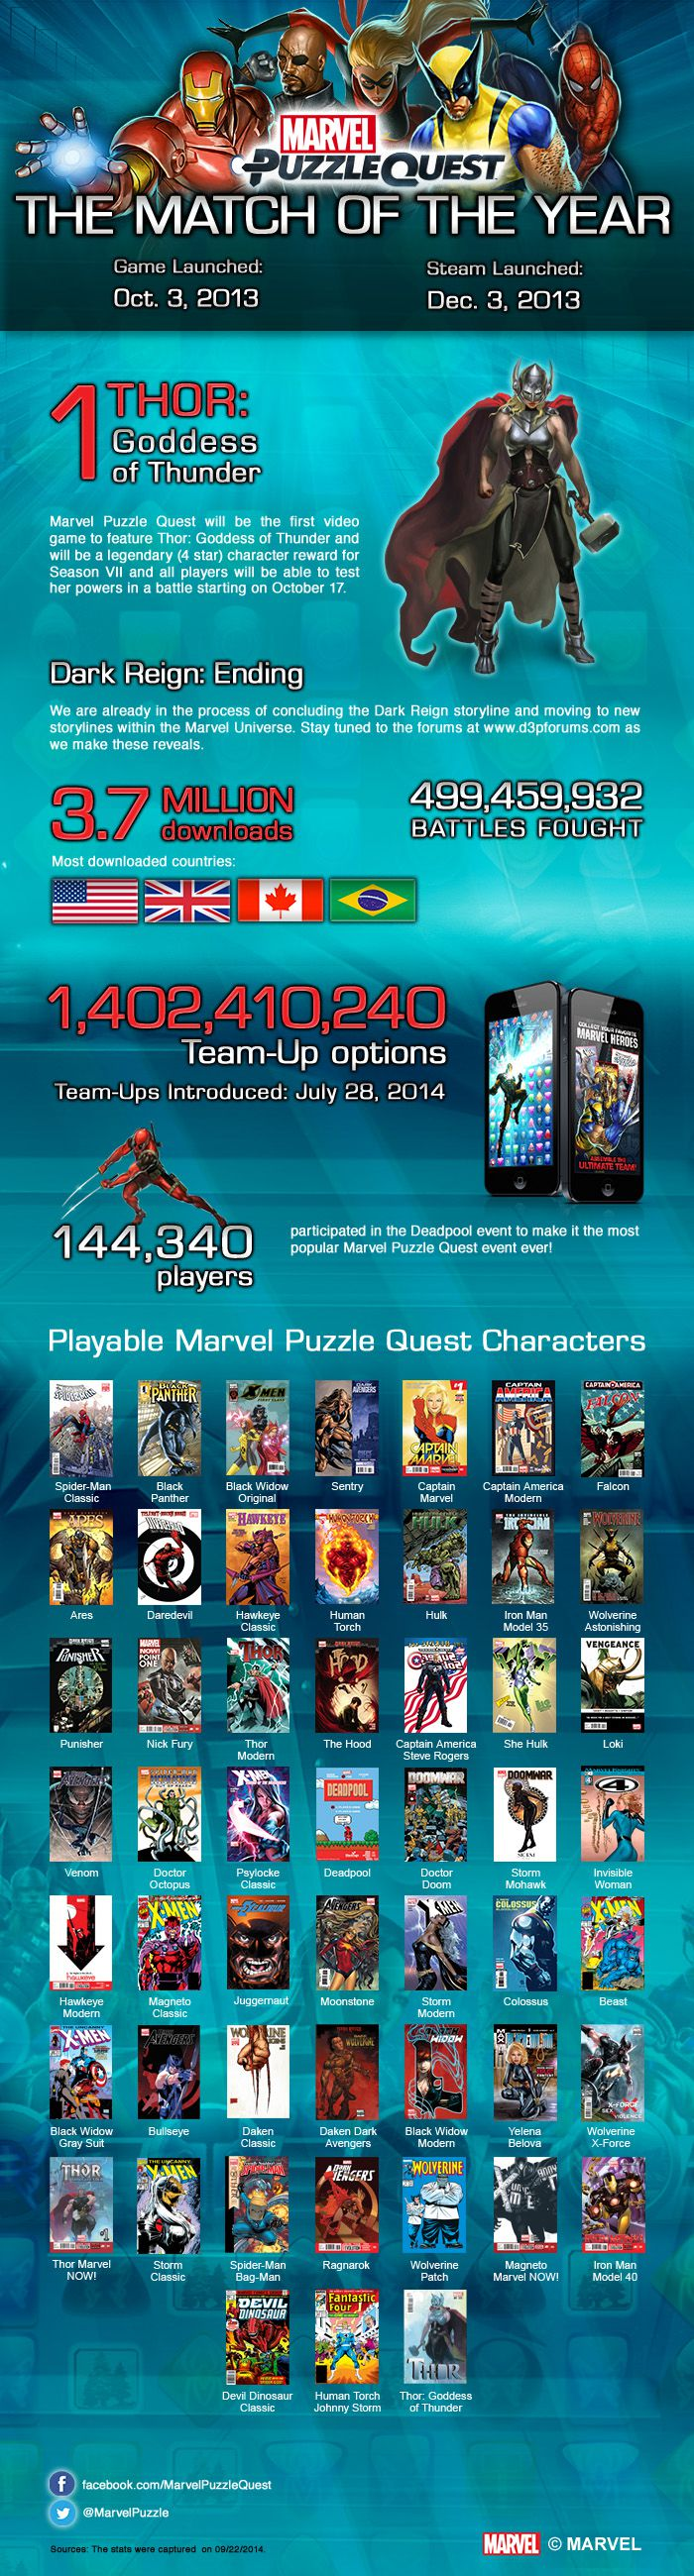 Marvel Puzzle Quest one year anniversary infographic